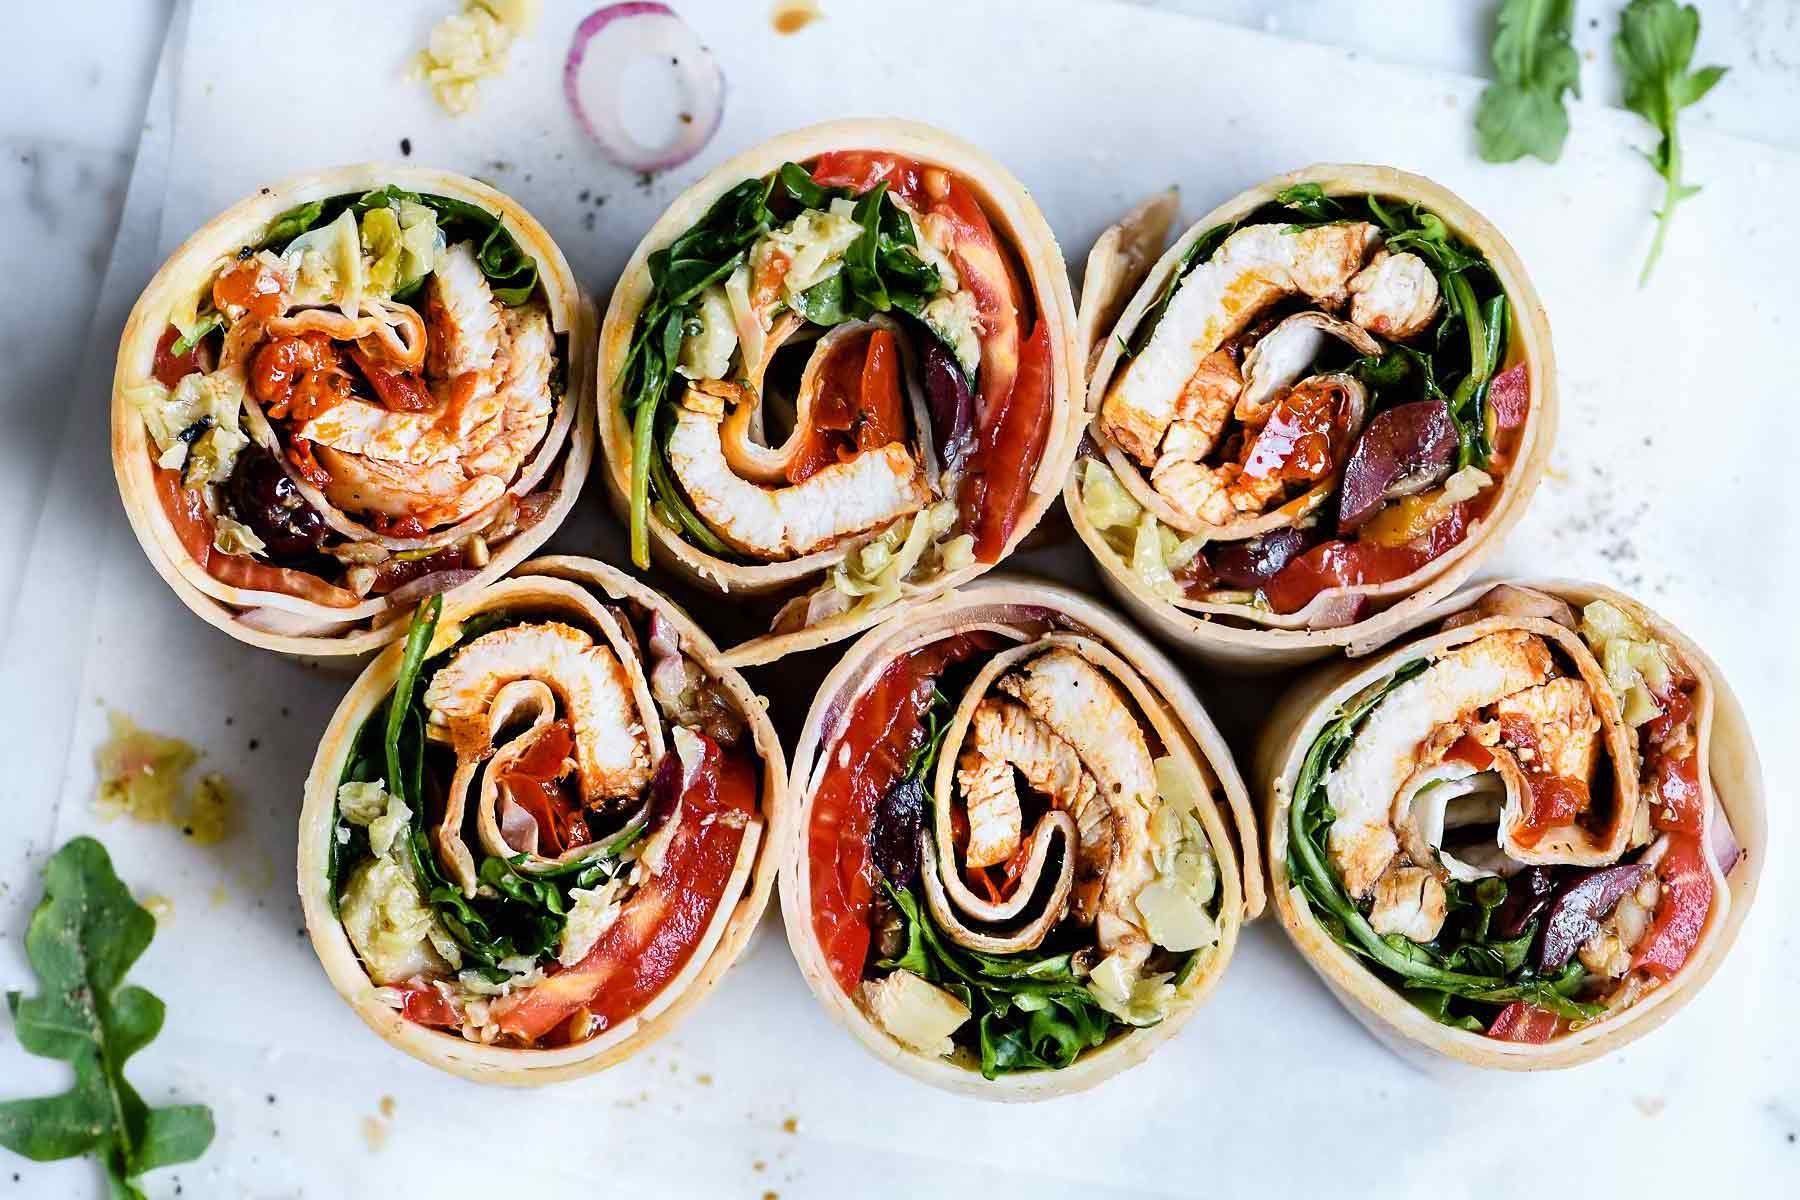 WRAPS AND SANDWICHES